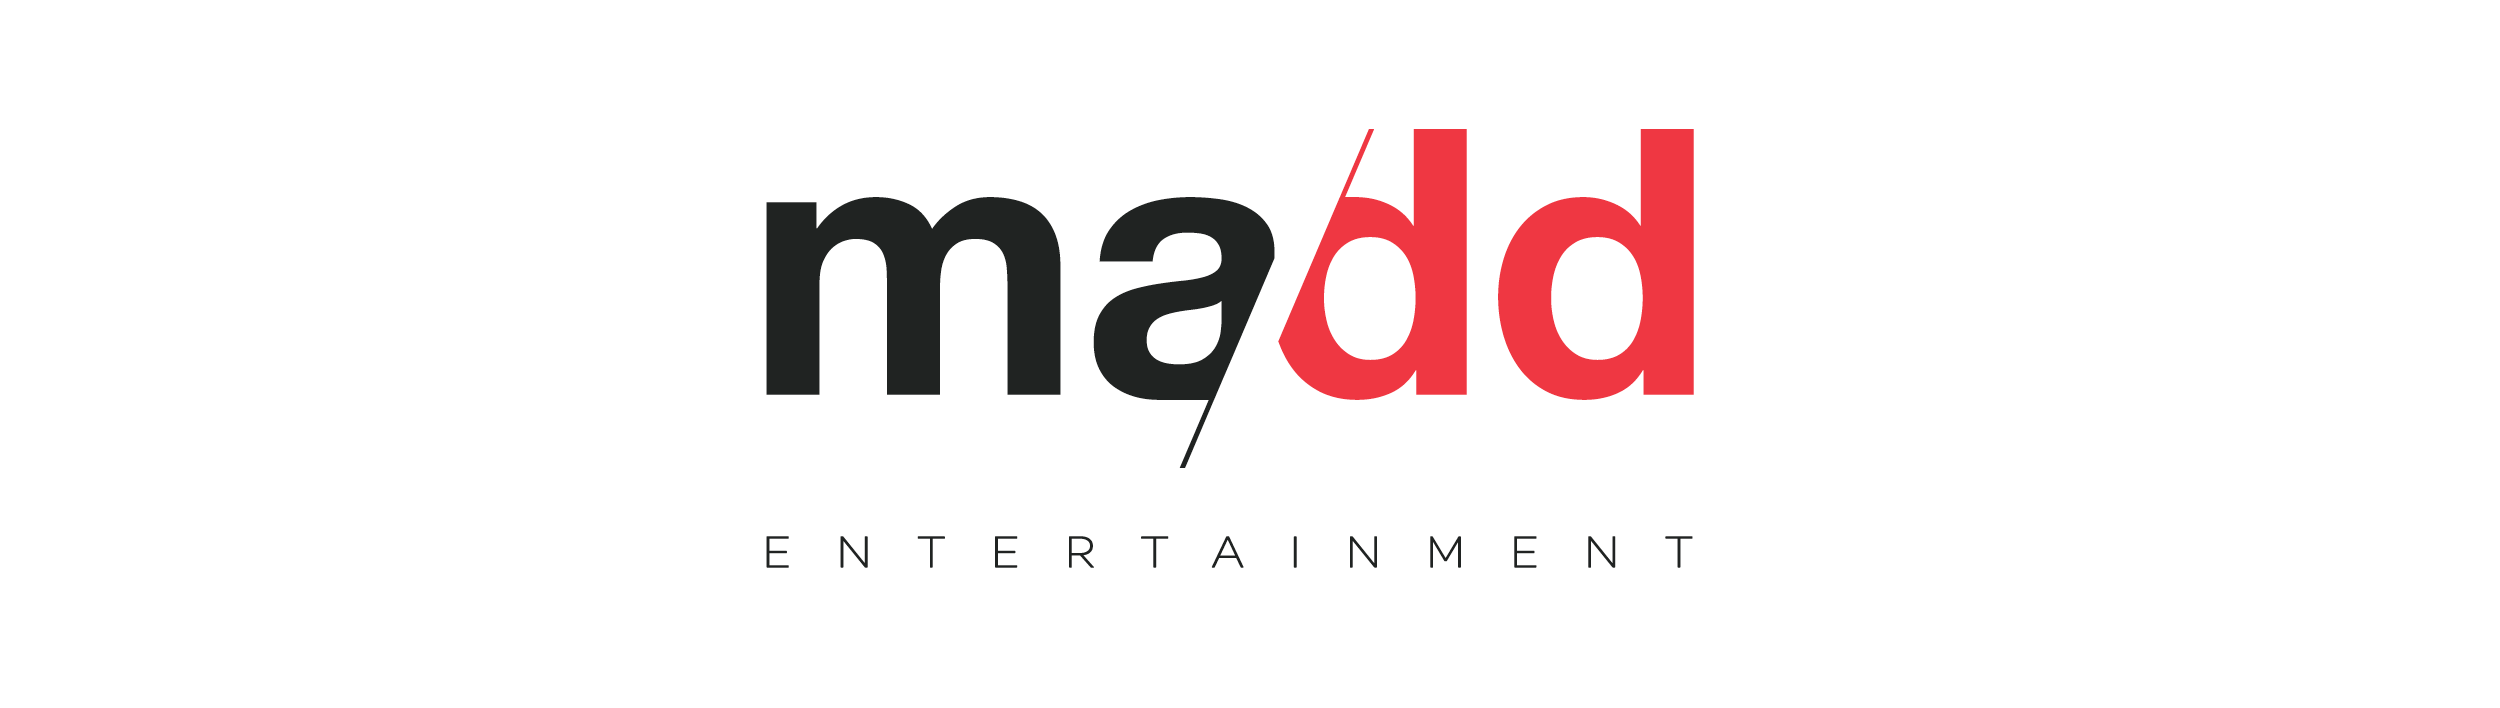 madd entertainment